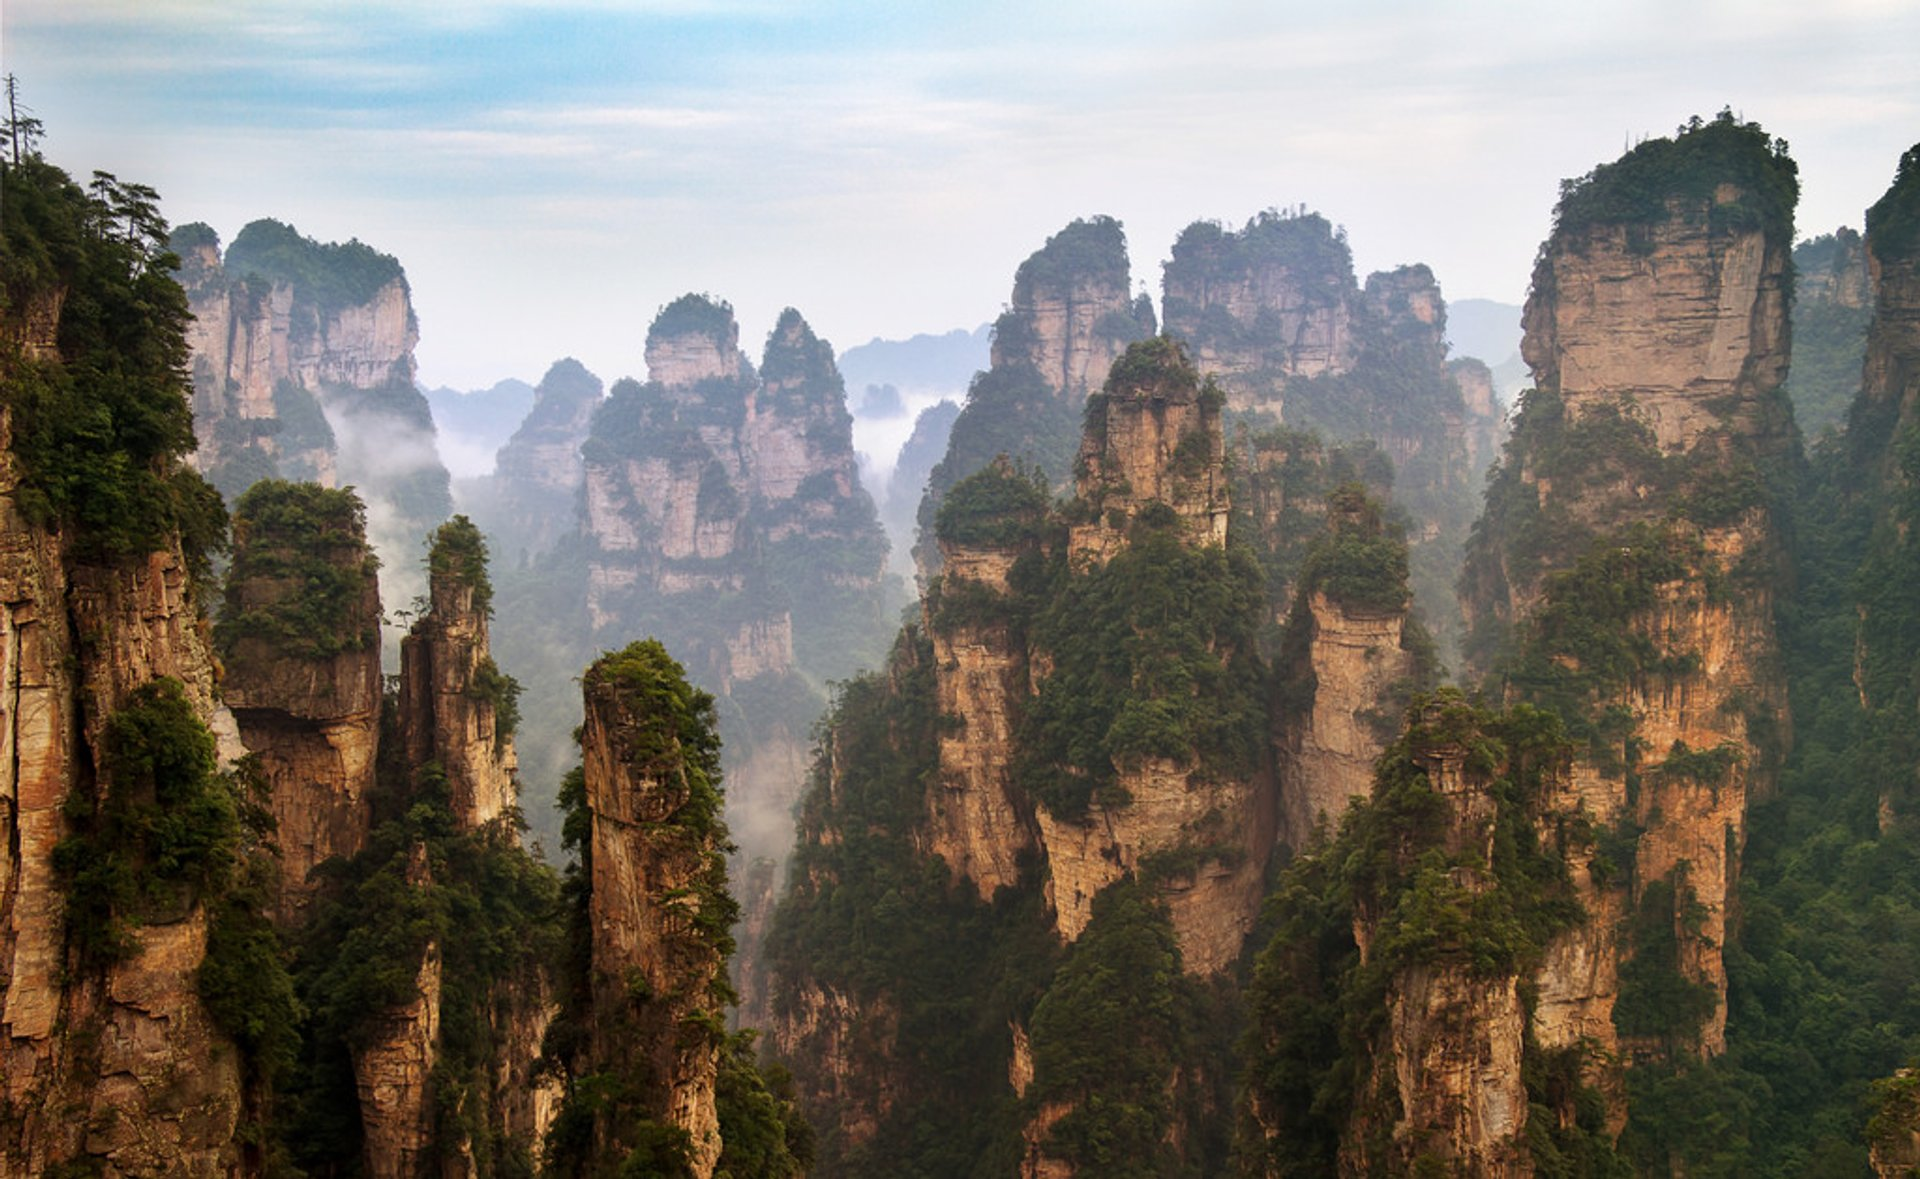 Zhangjiajie National Forest Park in China - Best Time